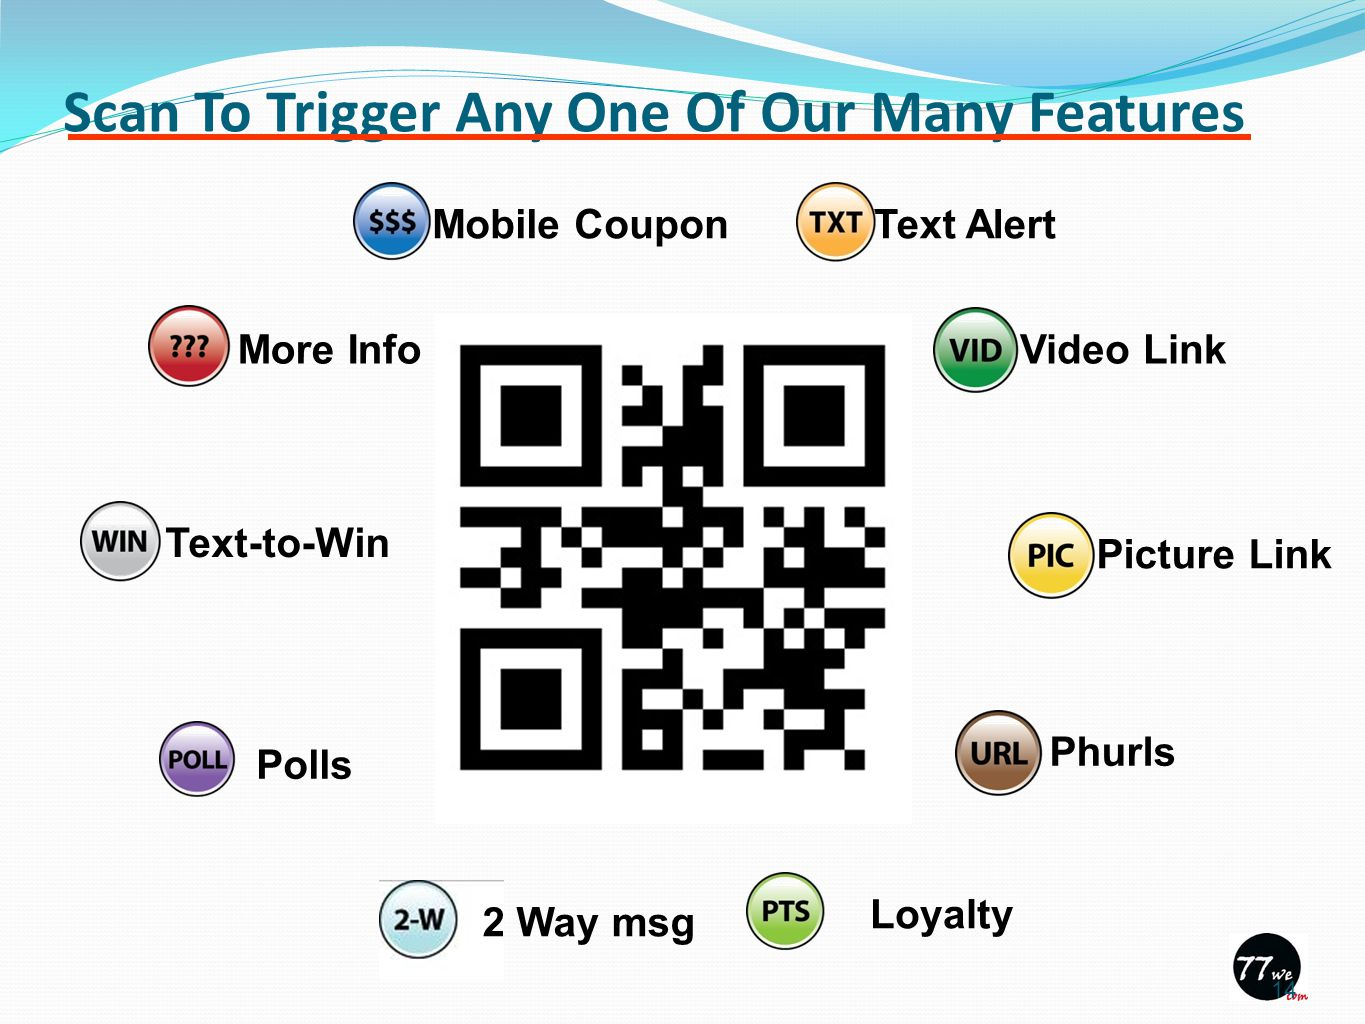 Scan To Trigger Any One Of Our Many Features Polls Text-to-Win More Info Mobile Coupon Text Alert Video Link Picture LinkPhurls Loyalty 2 Way msg 14